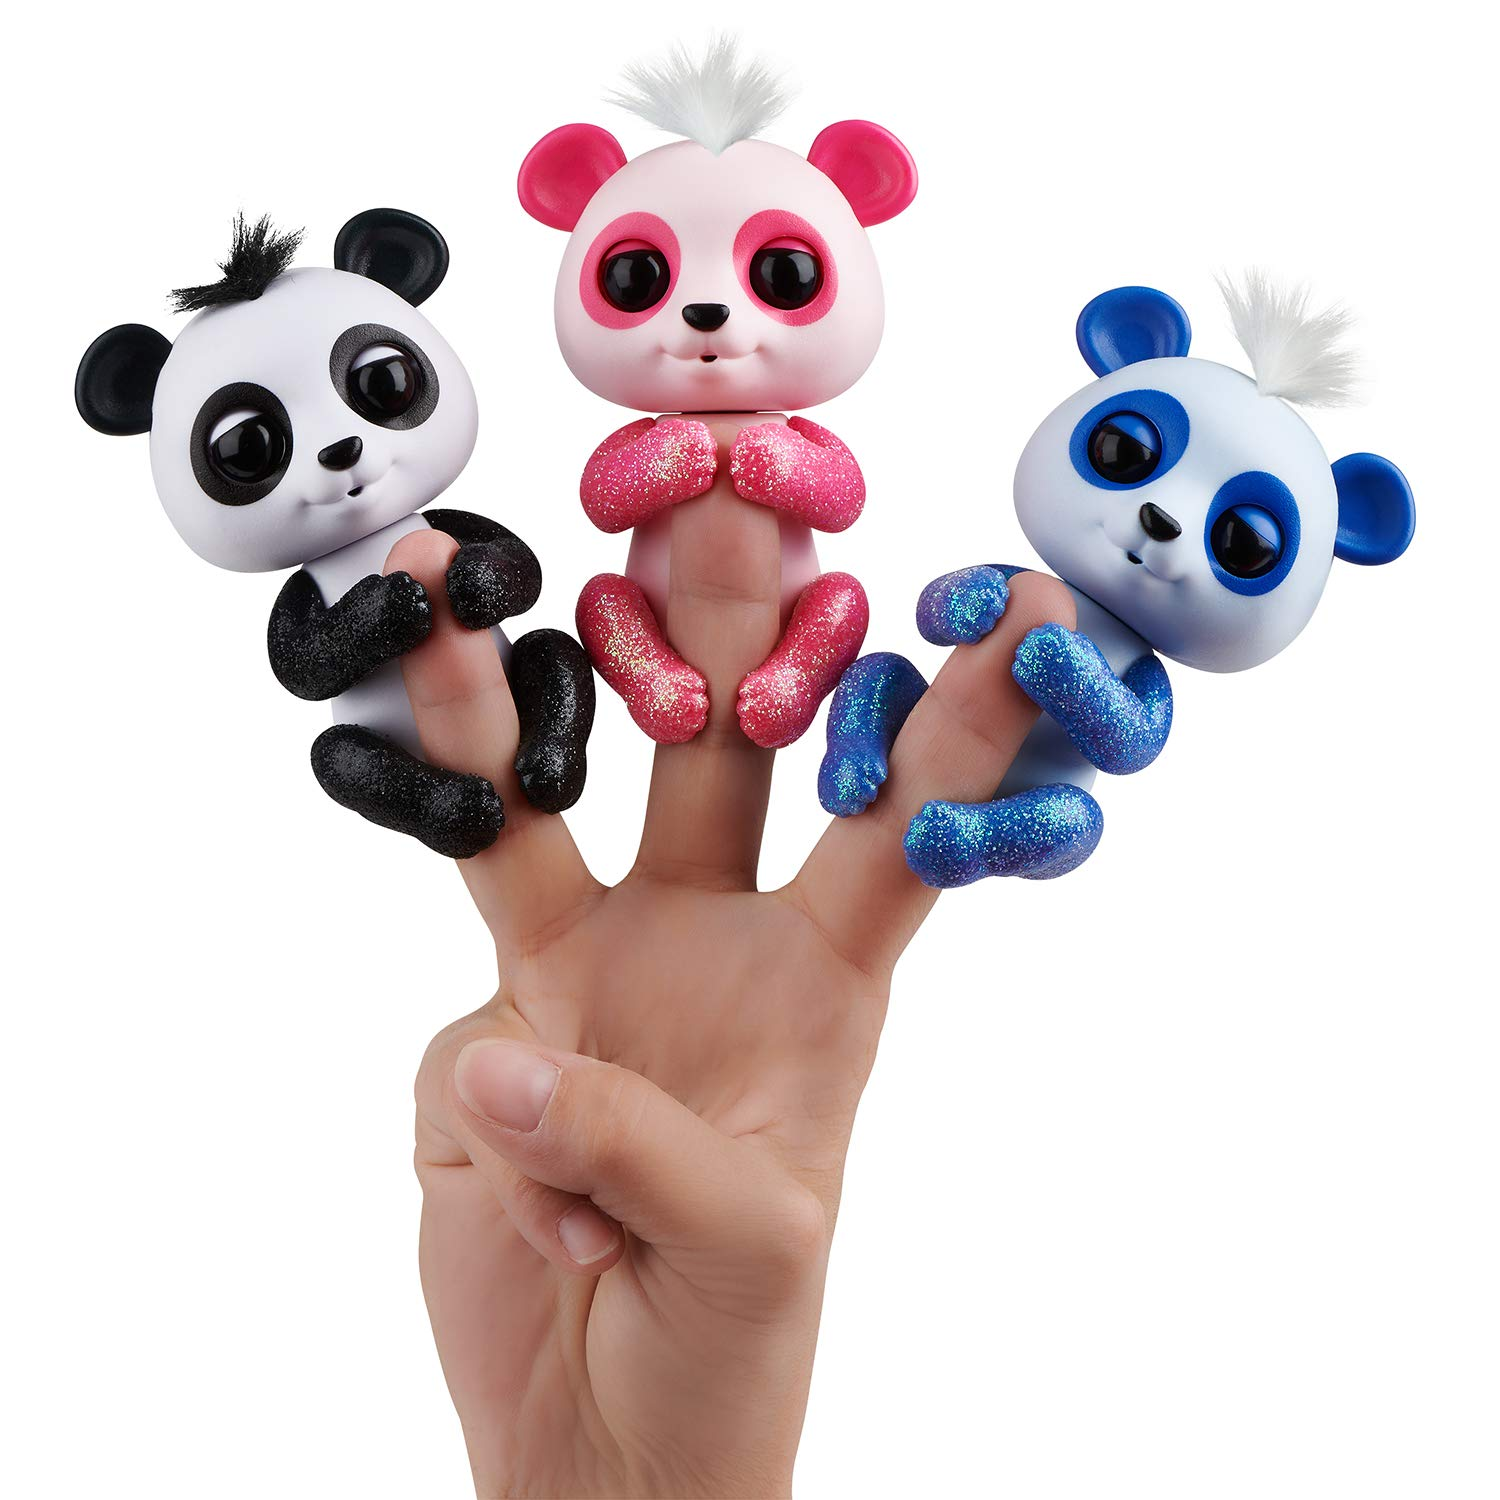 WowWee Fingerlings Glitter Panda - Polly - Interactive Collectible Baby Pet, Pink by WowWee (Image #4)